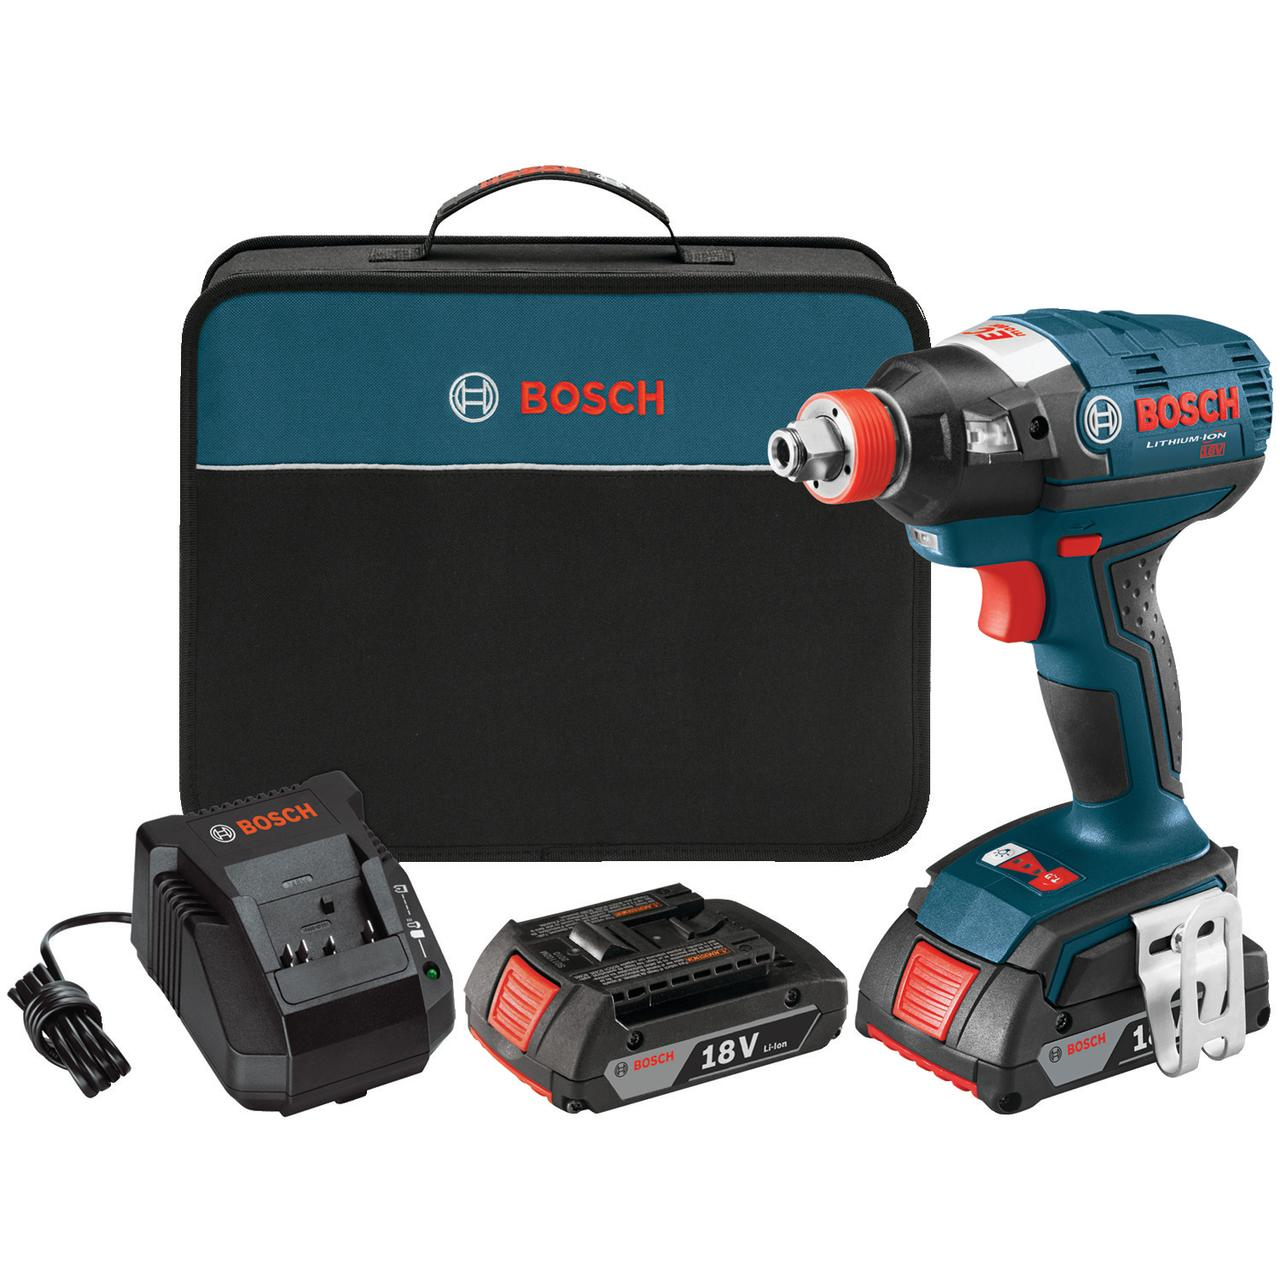 "Bosch IDH182-02 18-Volt Brushless 1/4"" & 1/2"" Socket-ready Impact Driver Kit"